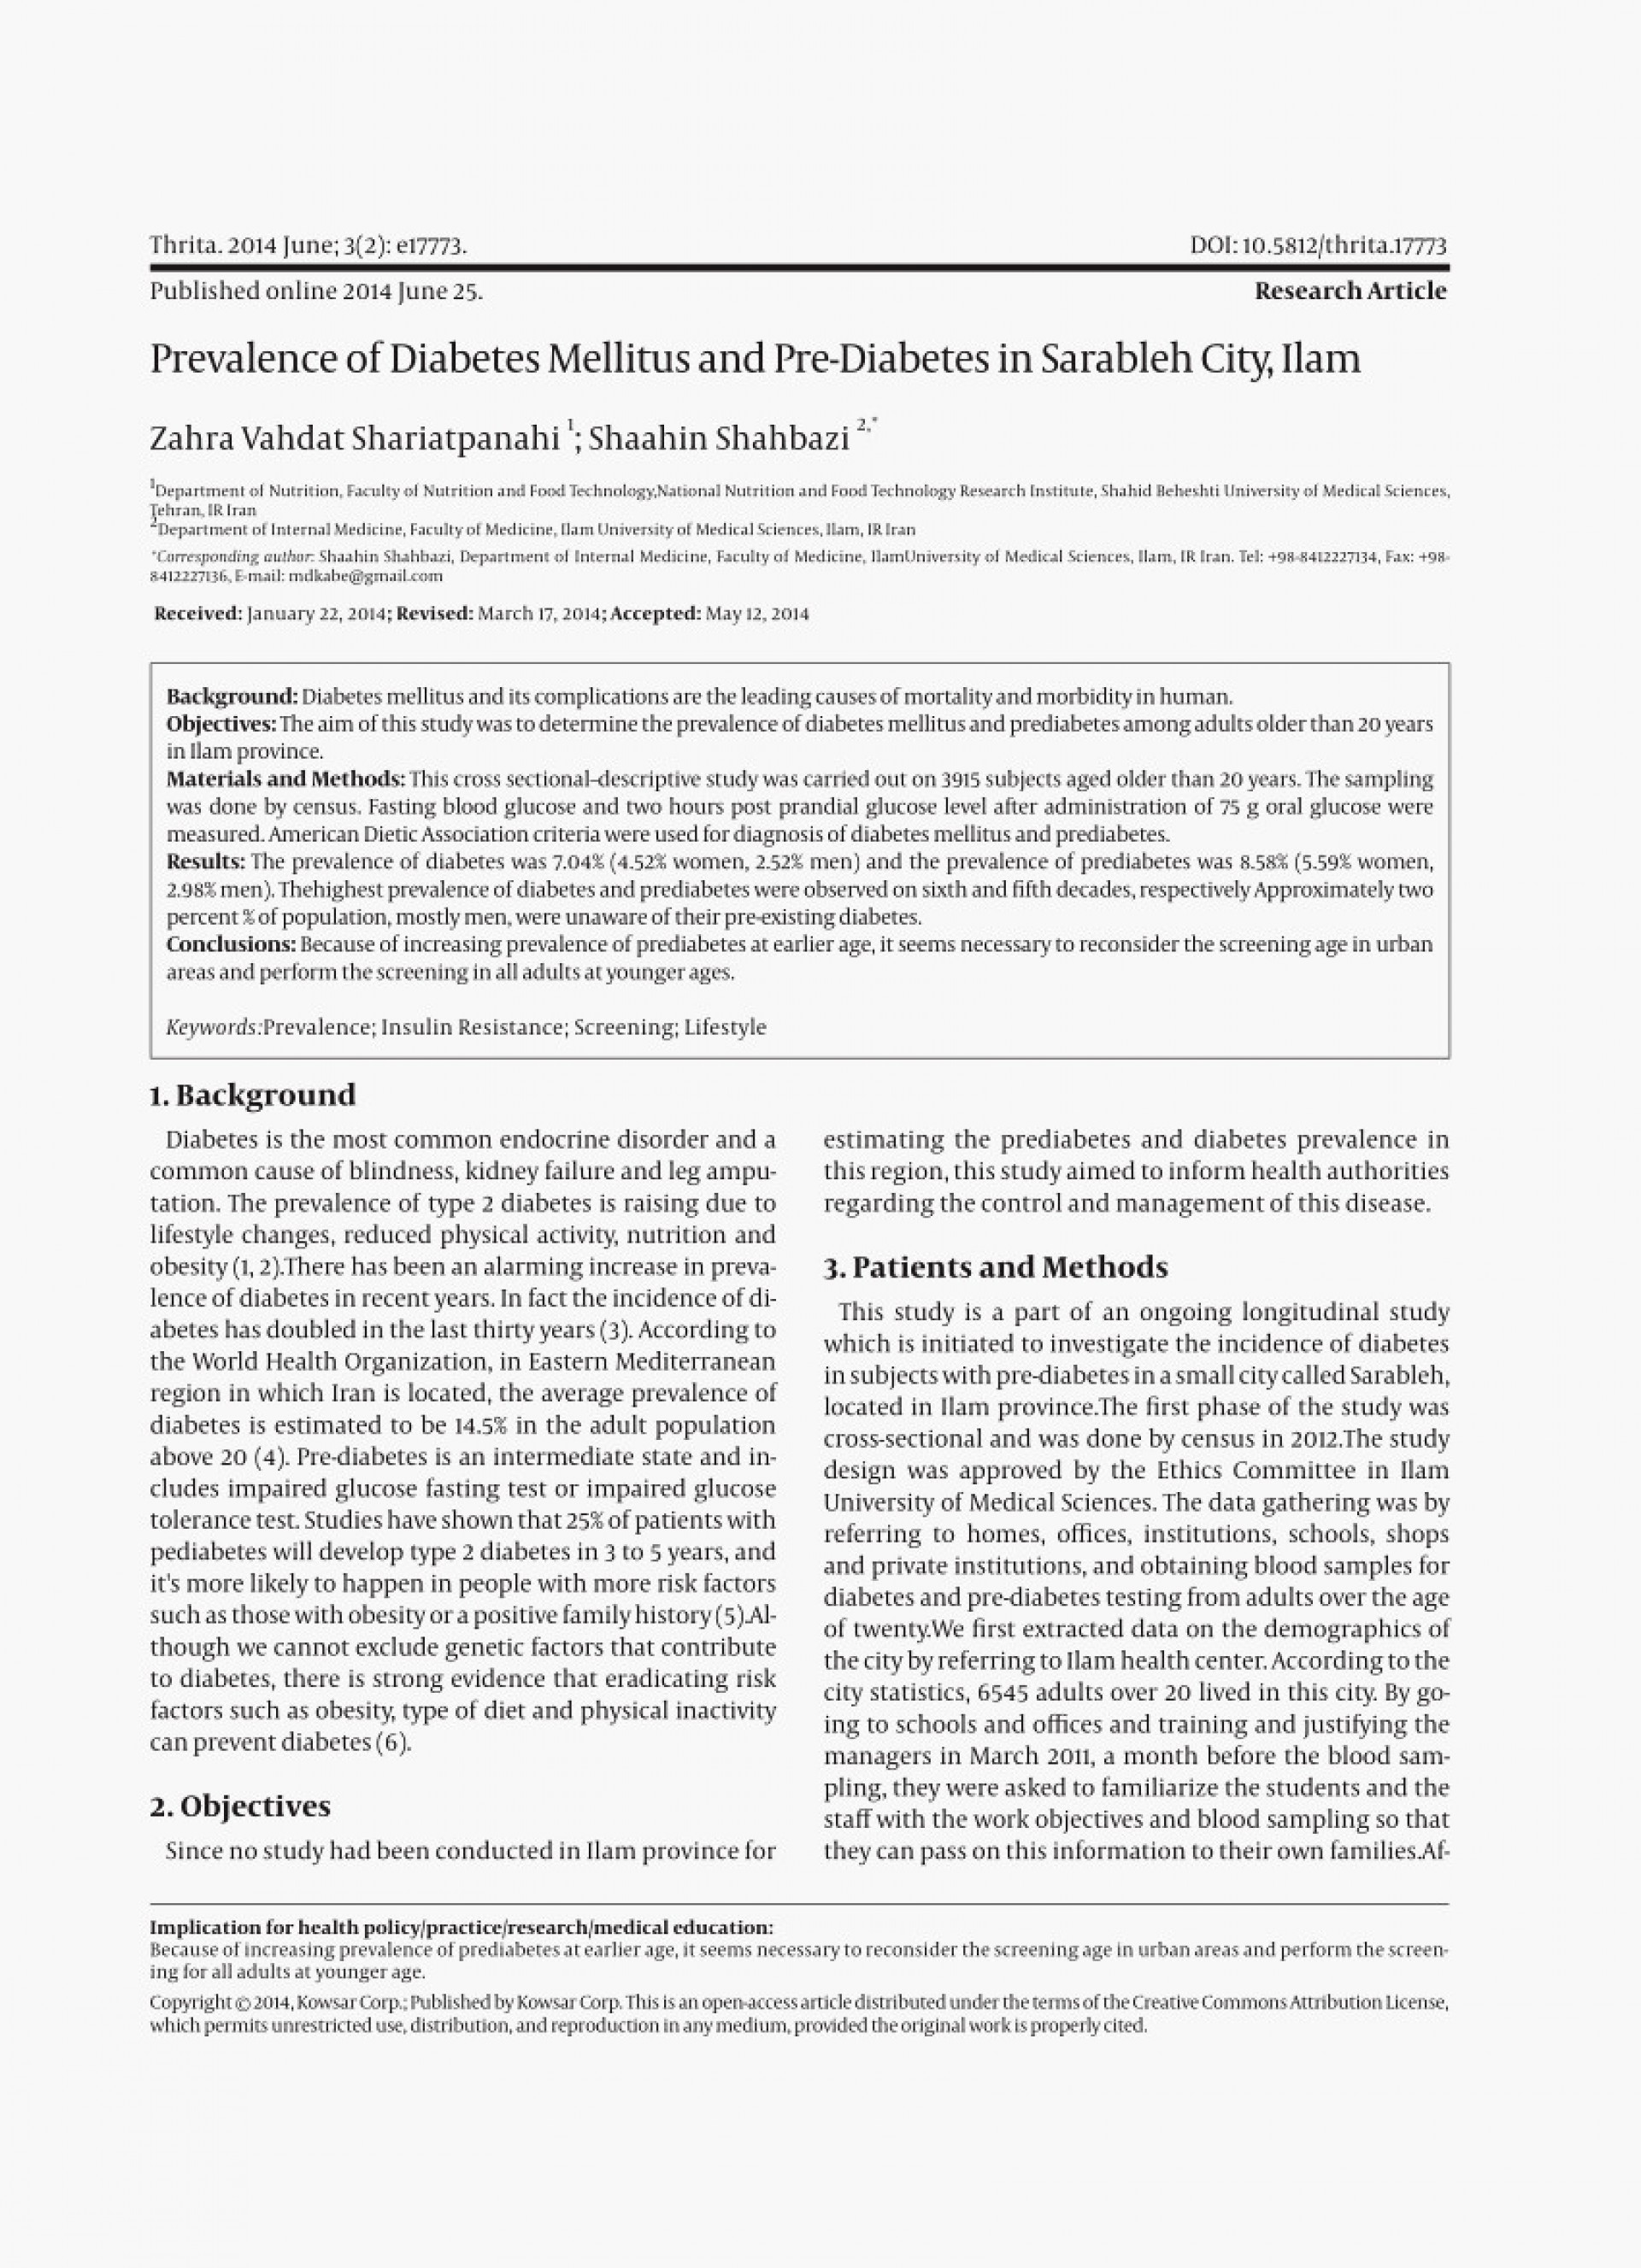 007 Chicago Style Research Paper Elegant Sample Diabetes About Pdf Iran Of Top Papers Mellitus 1920